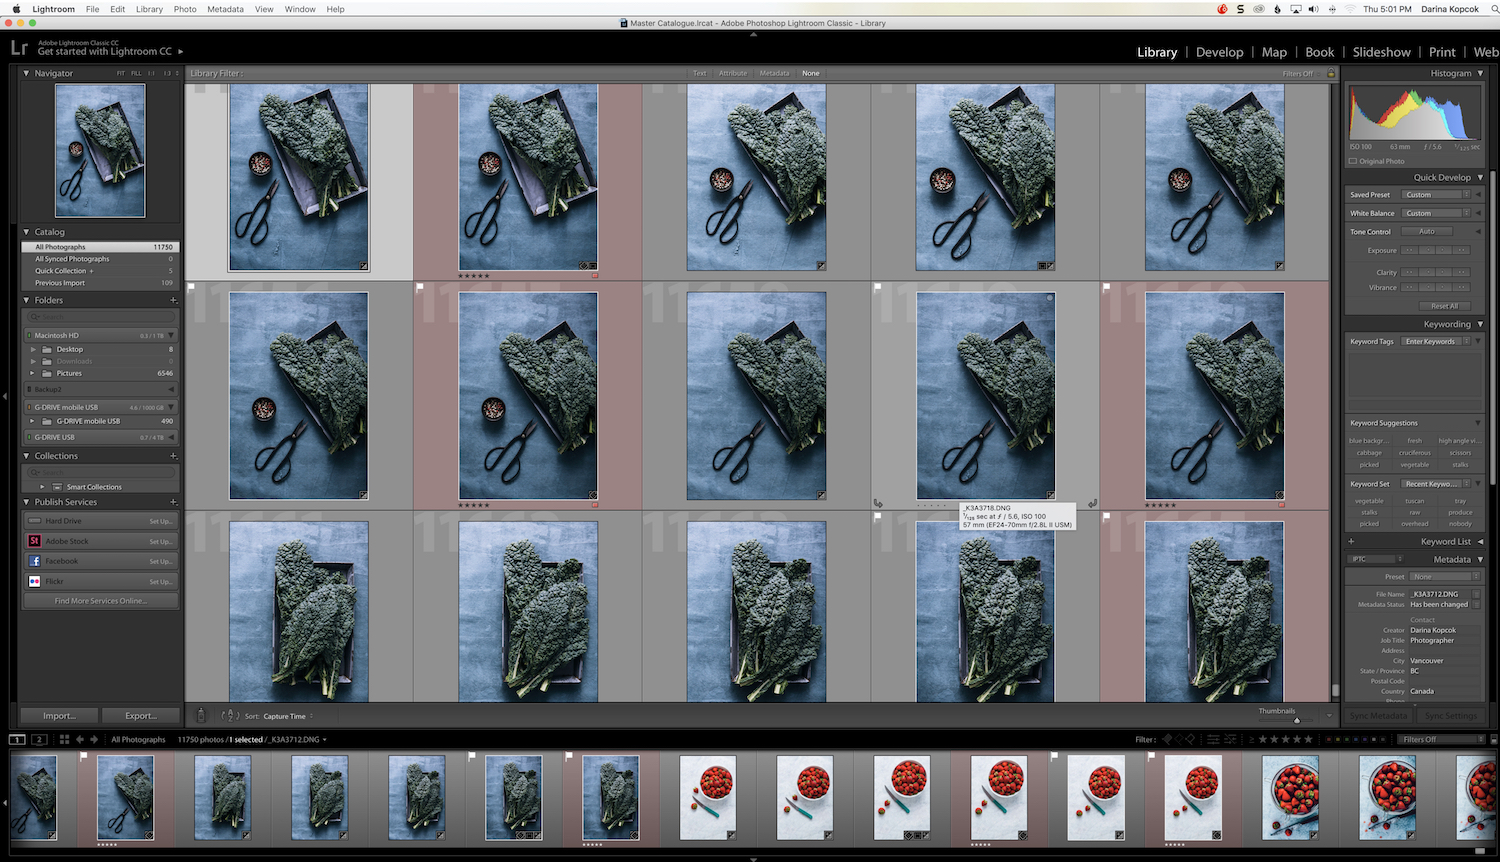 Grid View-Lightroom - How to Find for Your Photos in the Lightroom Catalog Using Filters